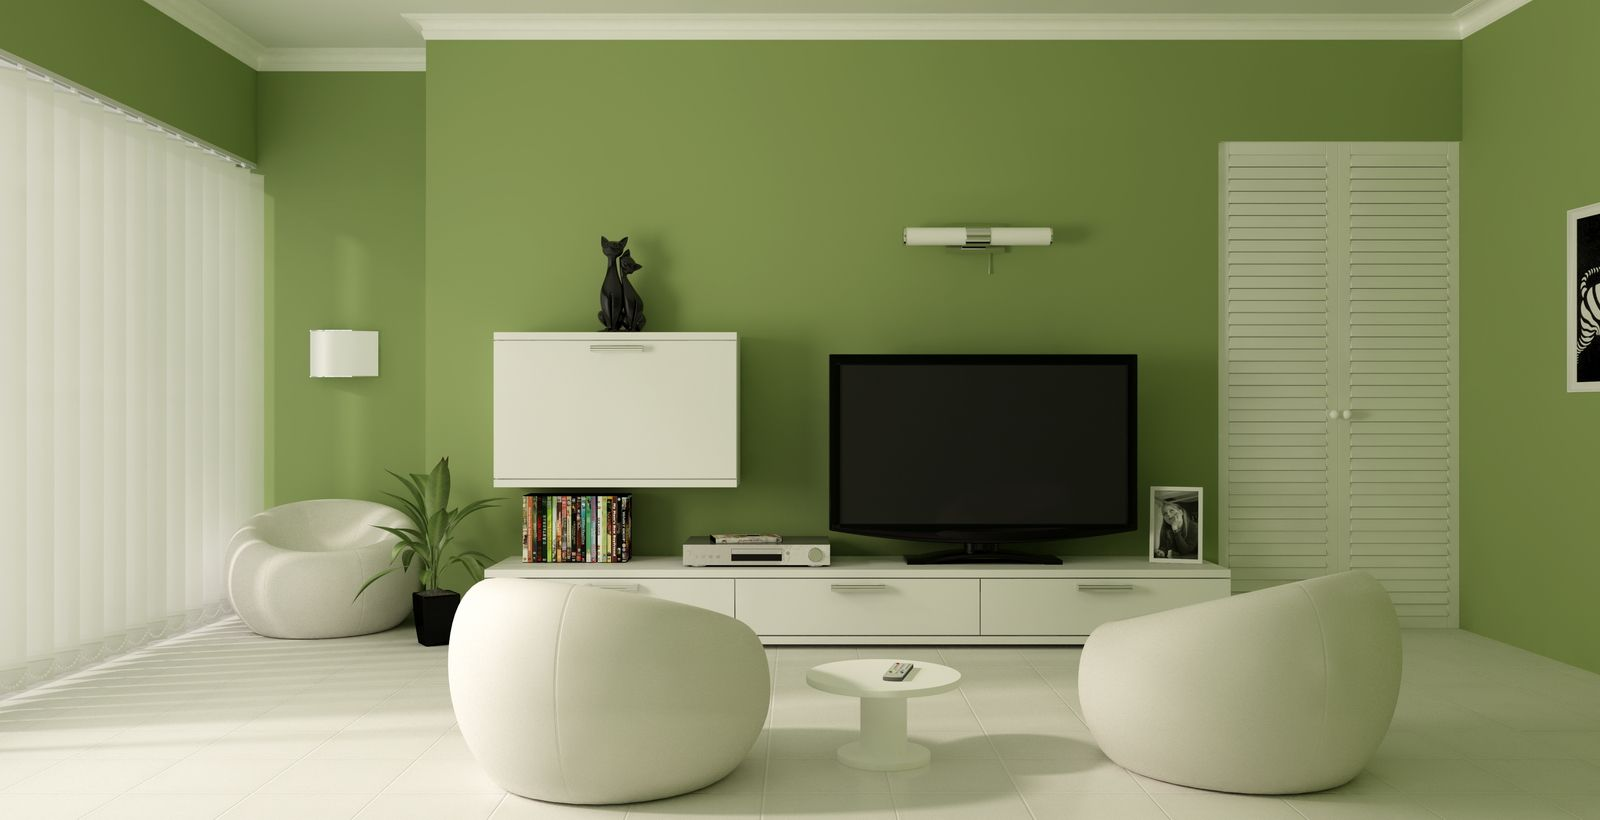 Green room color ideas - Paint Colors Ideas For Living Room